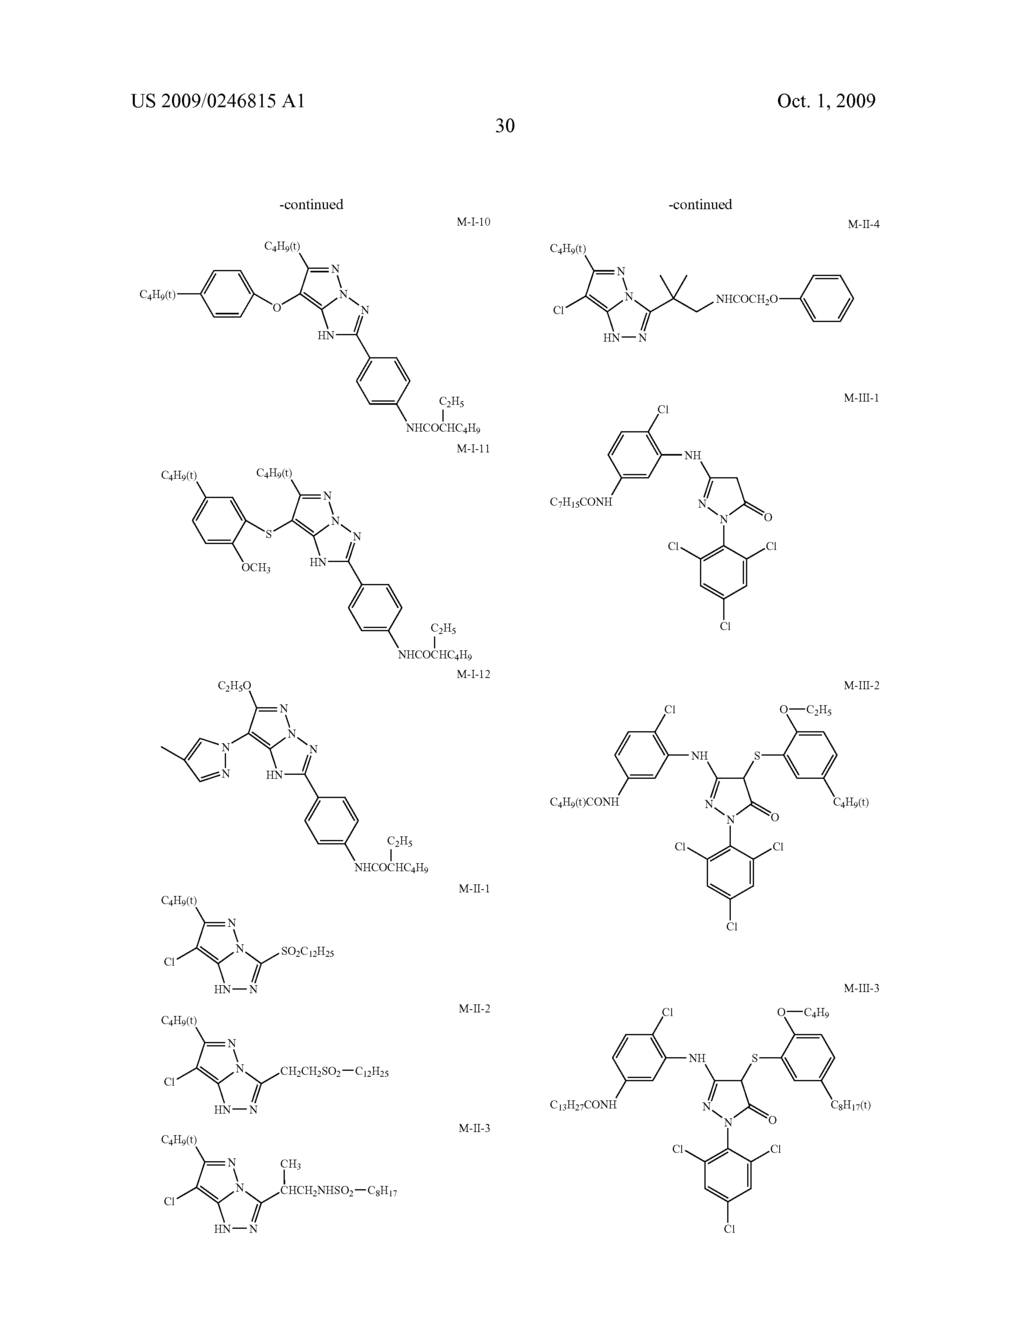 PROTEASE DETECTION MATERIAL, SET OF PROTEASE DETECTION MATERIALS, AND METHOD FOR MEASURING PROTEASE - diagram, schematic, and image 31